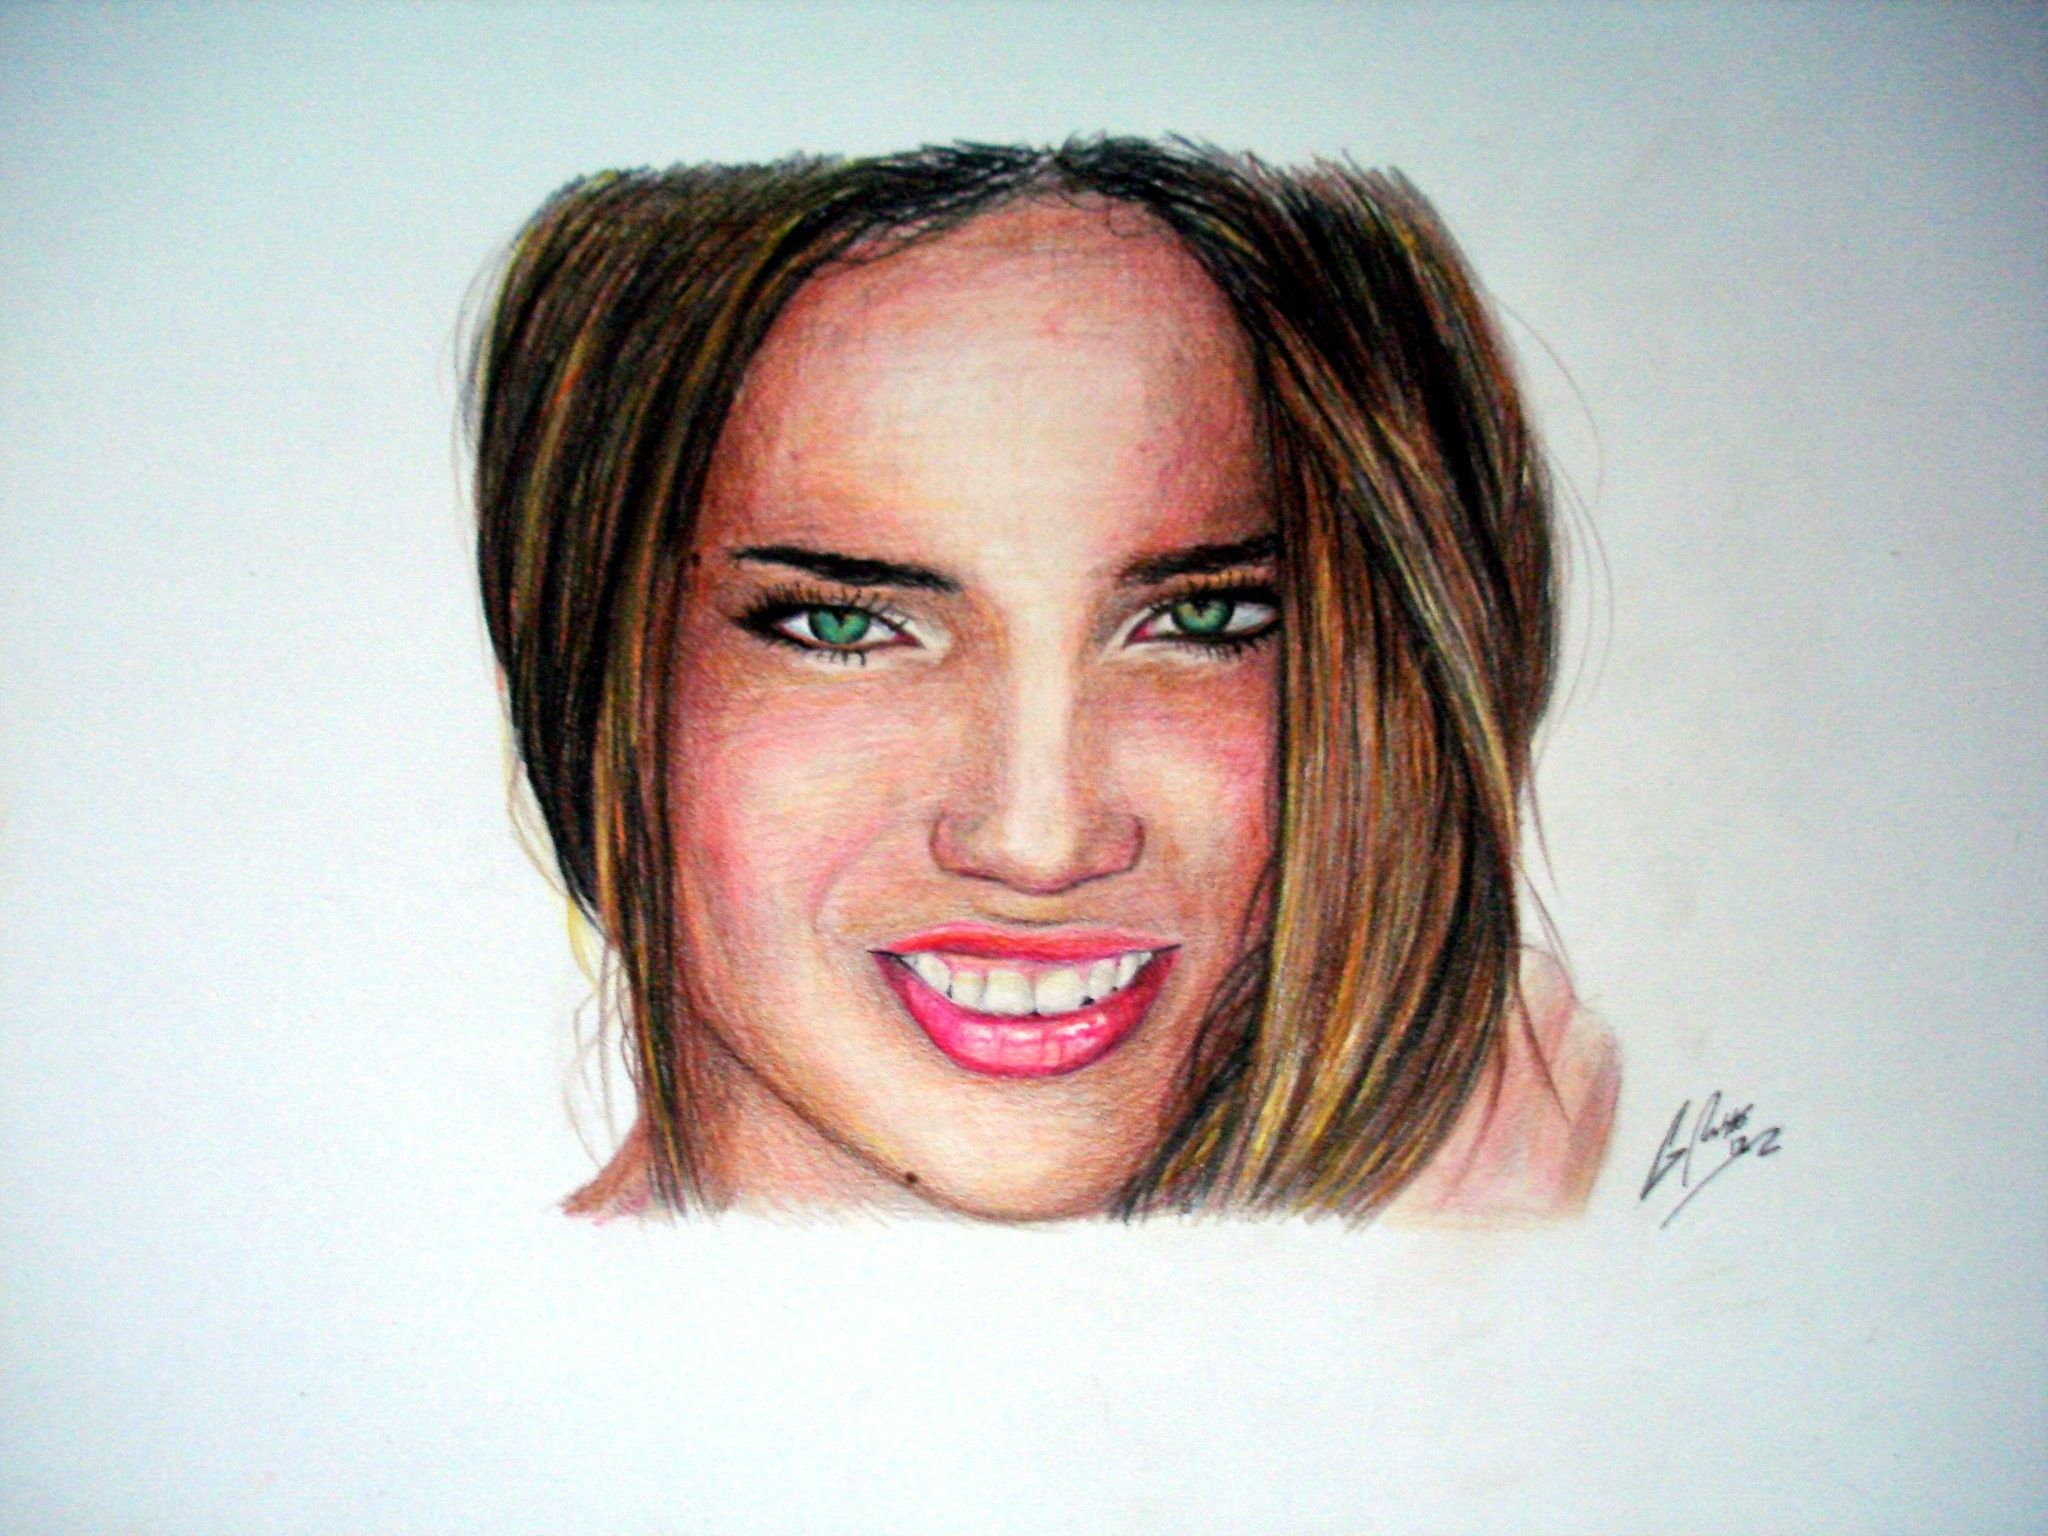 Adriana Lima - Speed Painting: http://www.youtube.com/watch?v=fro2FY9Z6lY